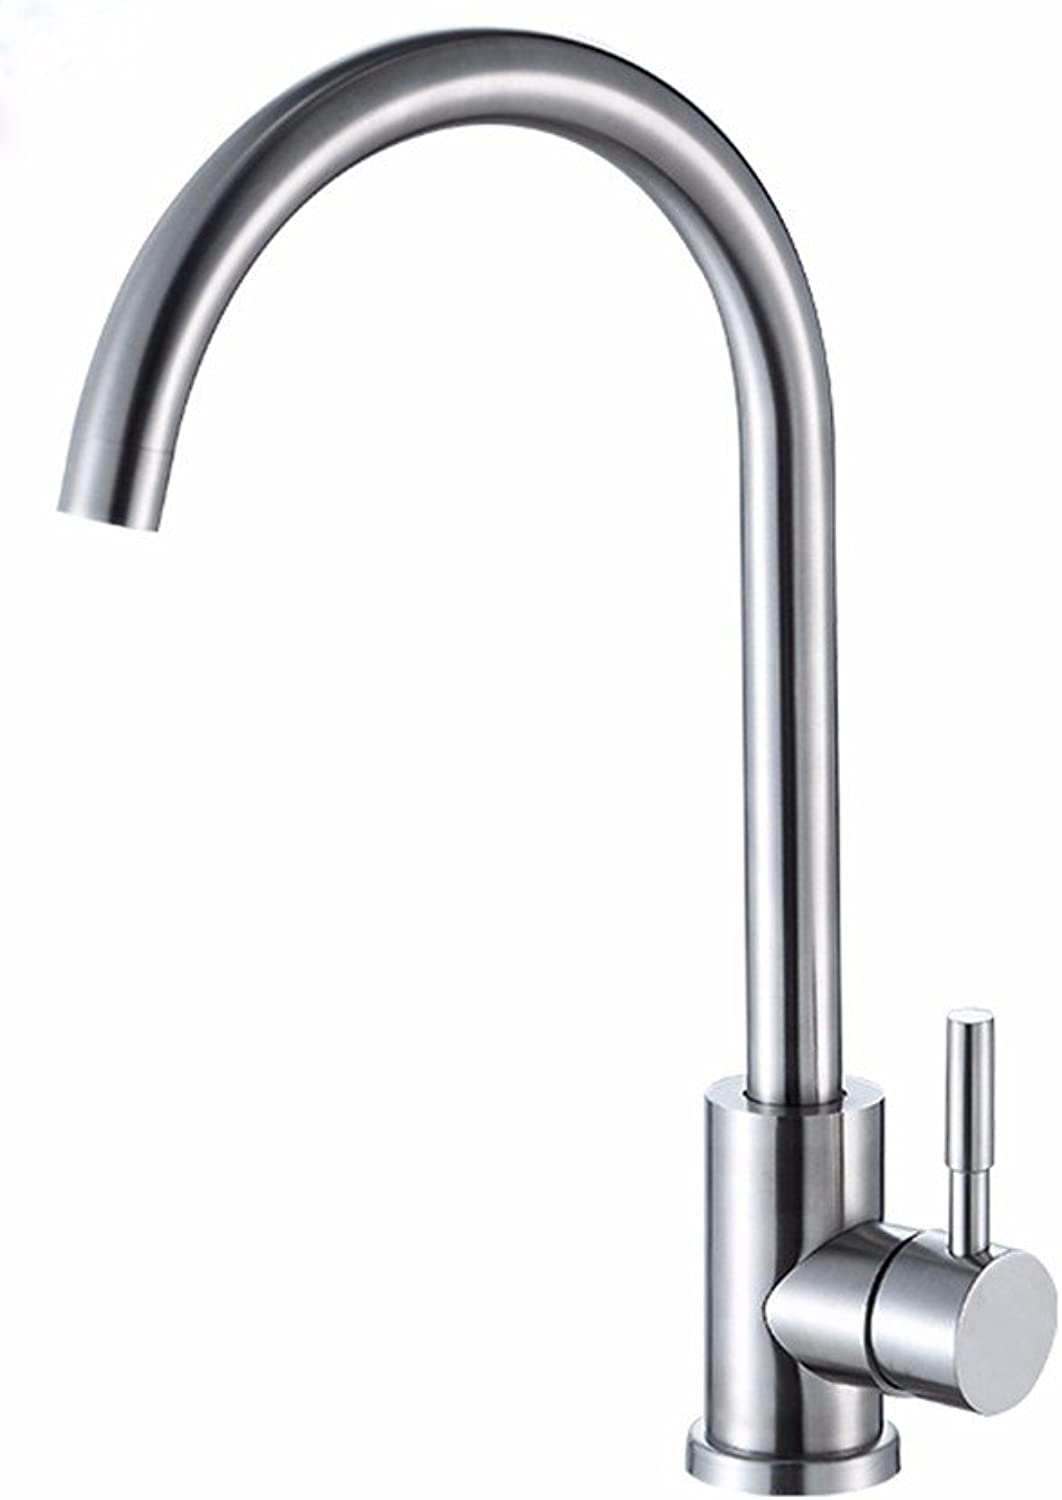 Lpophy Bathroom Sink Mixer Taps Faucet Bath Waterfall Cold and Hot Water Tap for Washroom Bathroom and Kitchen Stainless Steel Hot and Cold Single Cold Single Handle Single Hole G